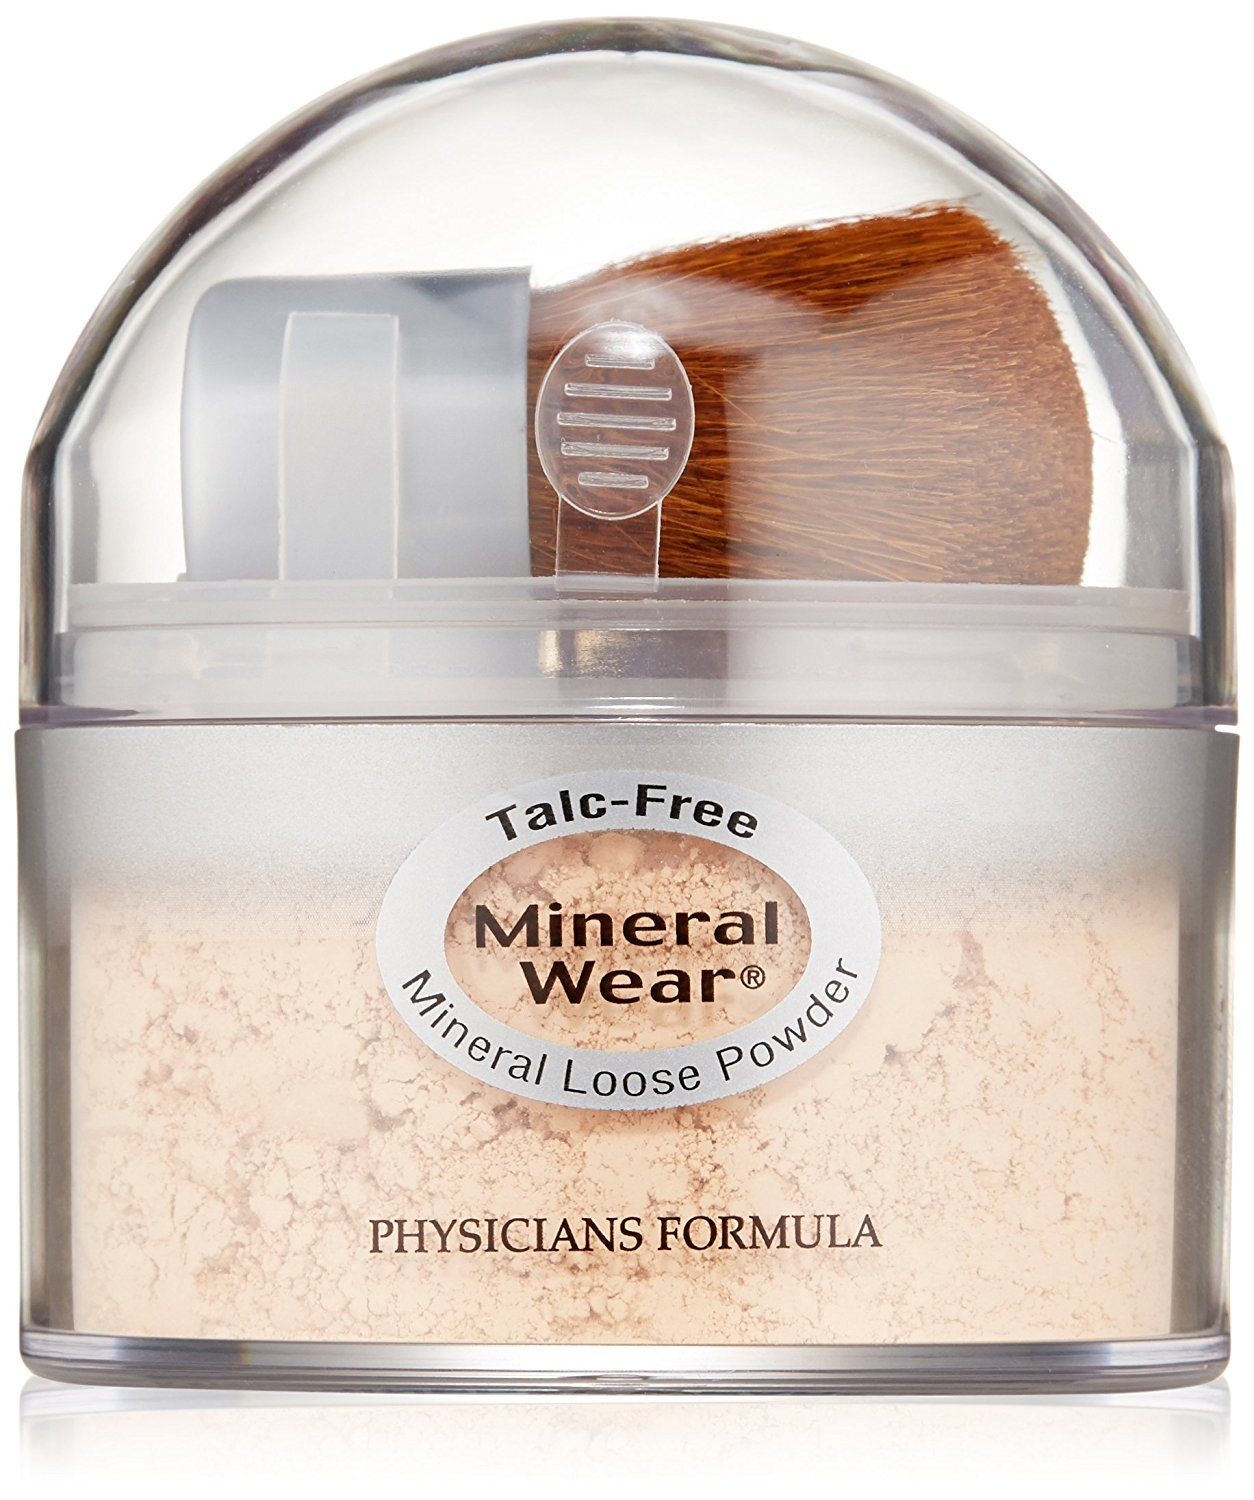 Physicians Formula Mineral Wear TalcFree Mineral Loose